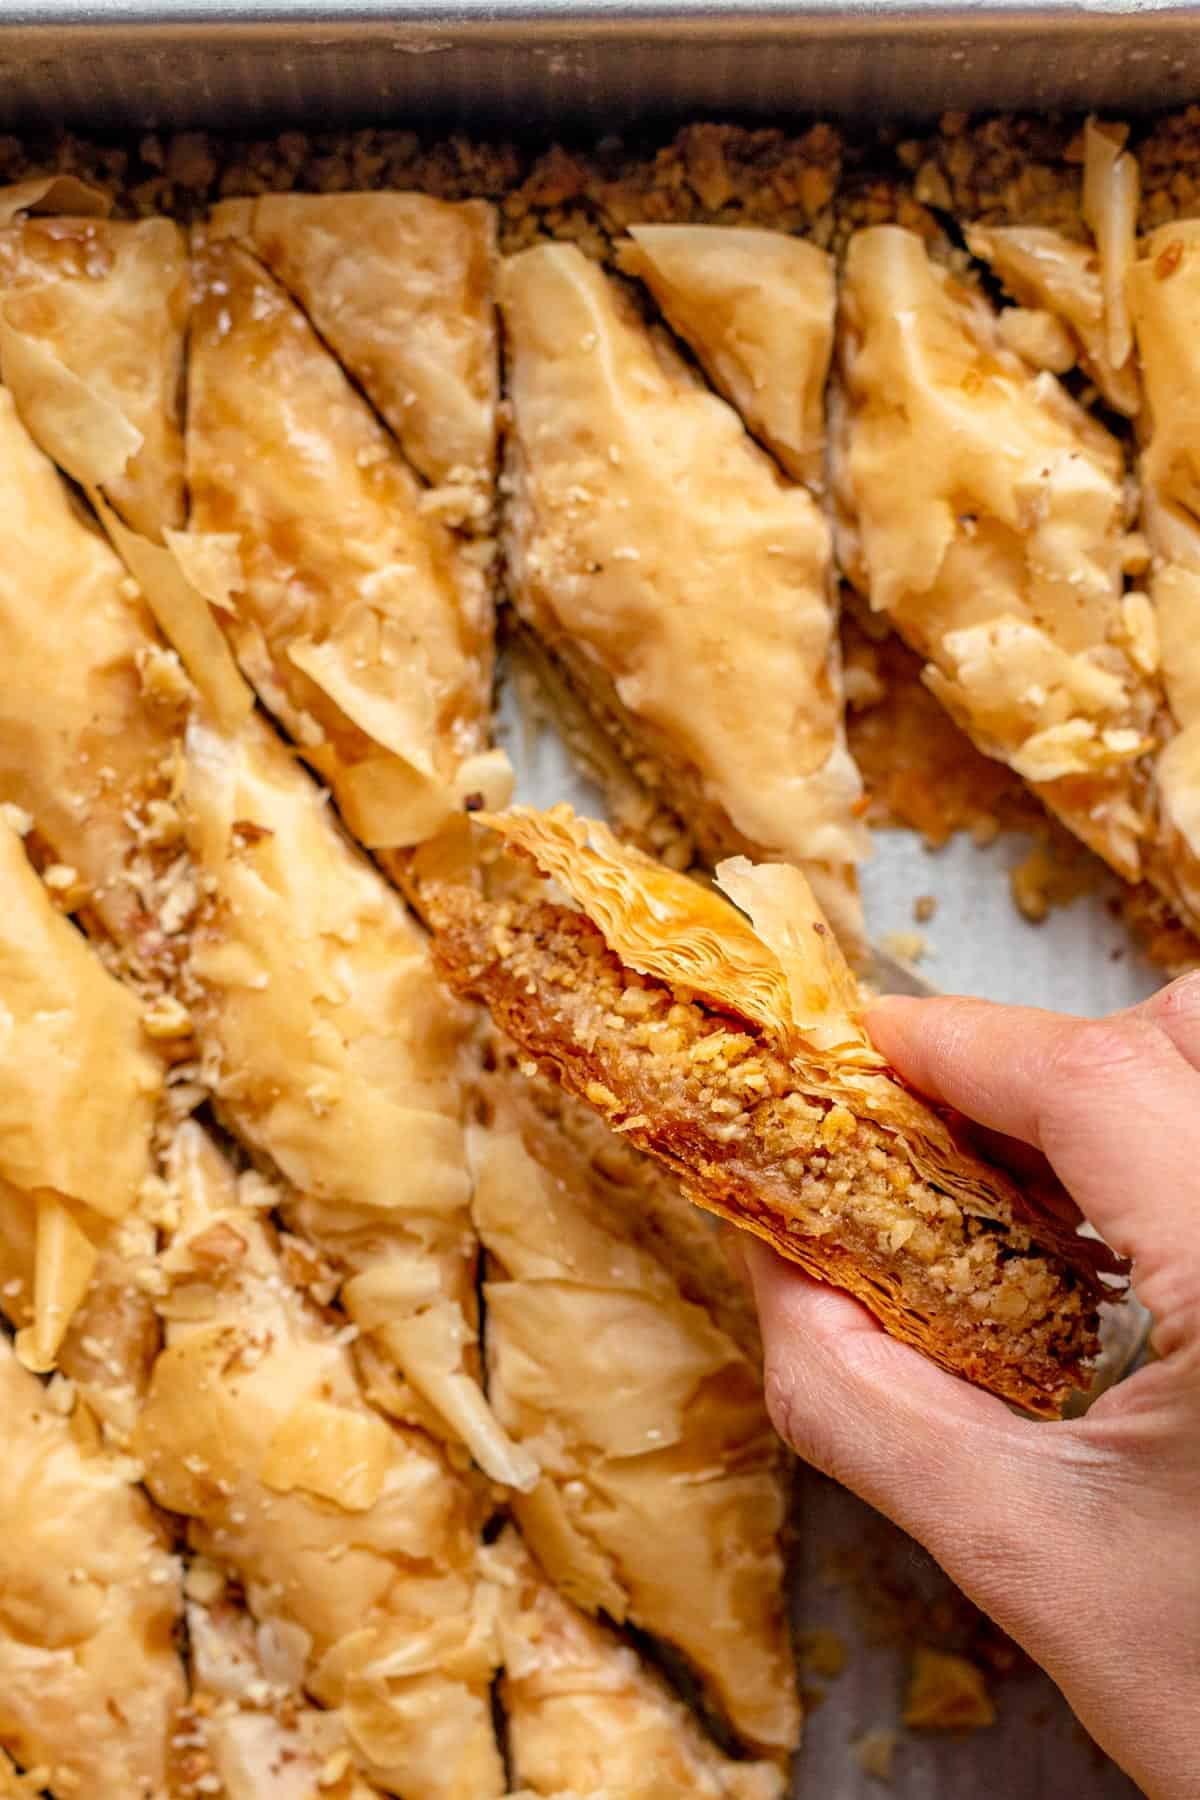 Hand holding a piece of lebanese baklawa to show the inside of the piece